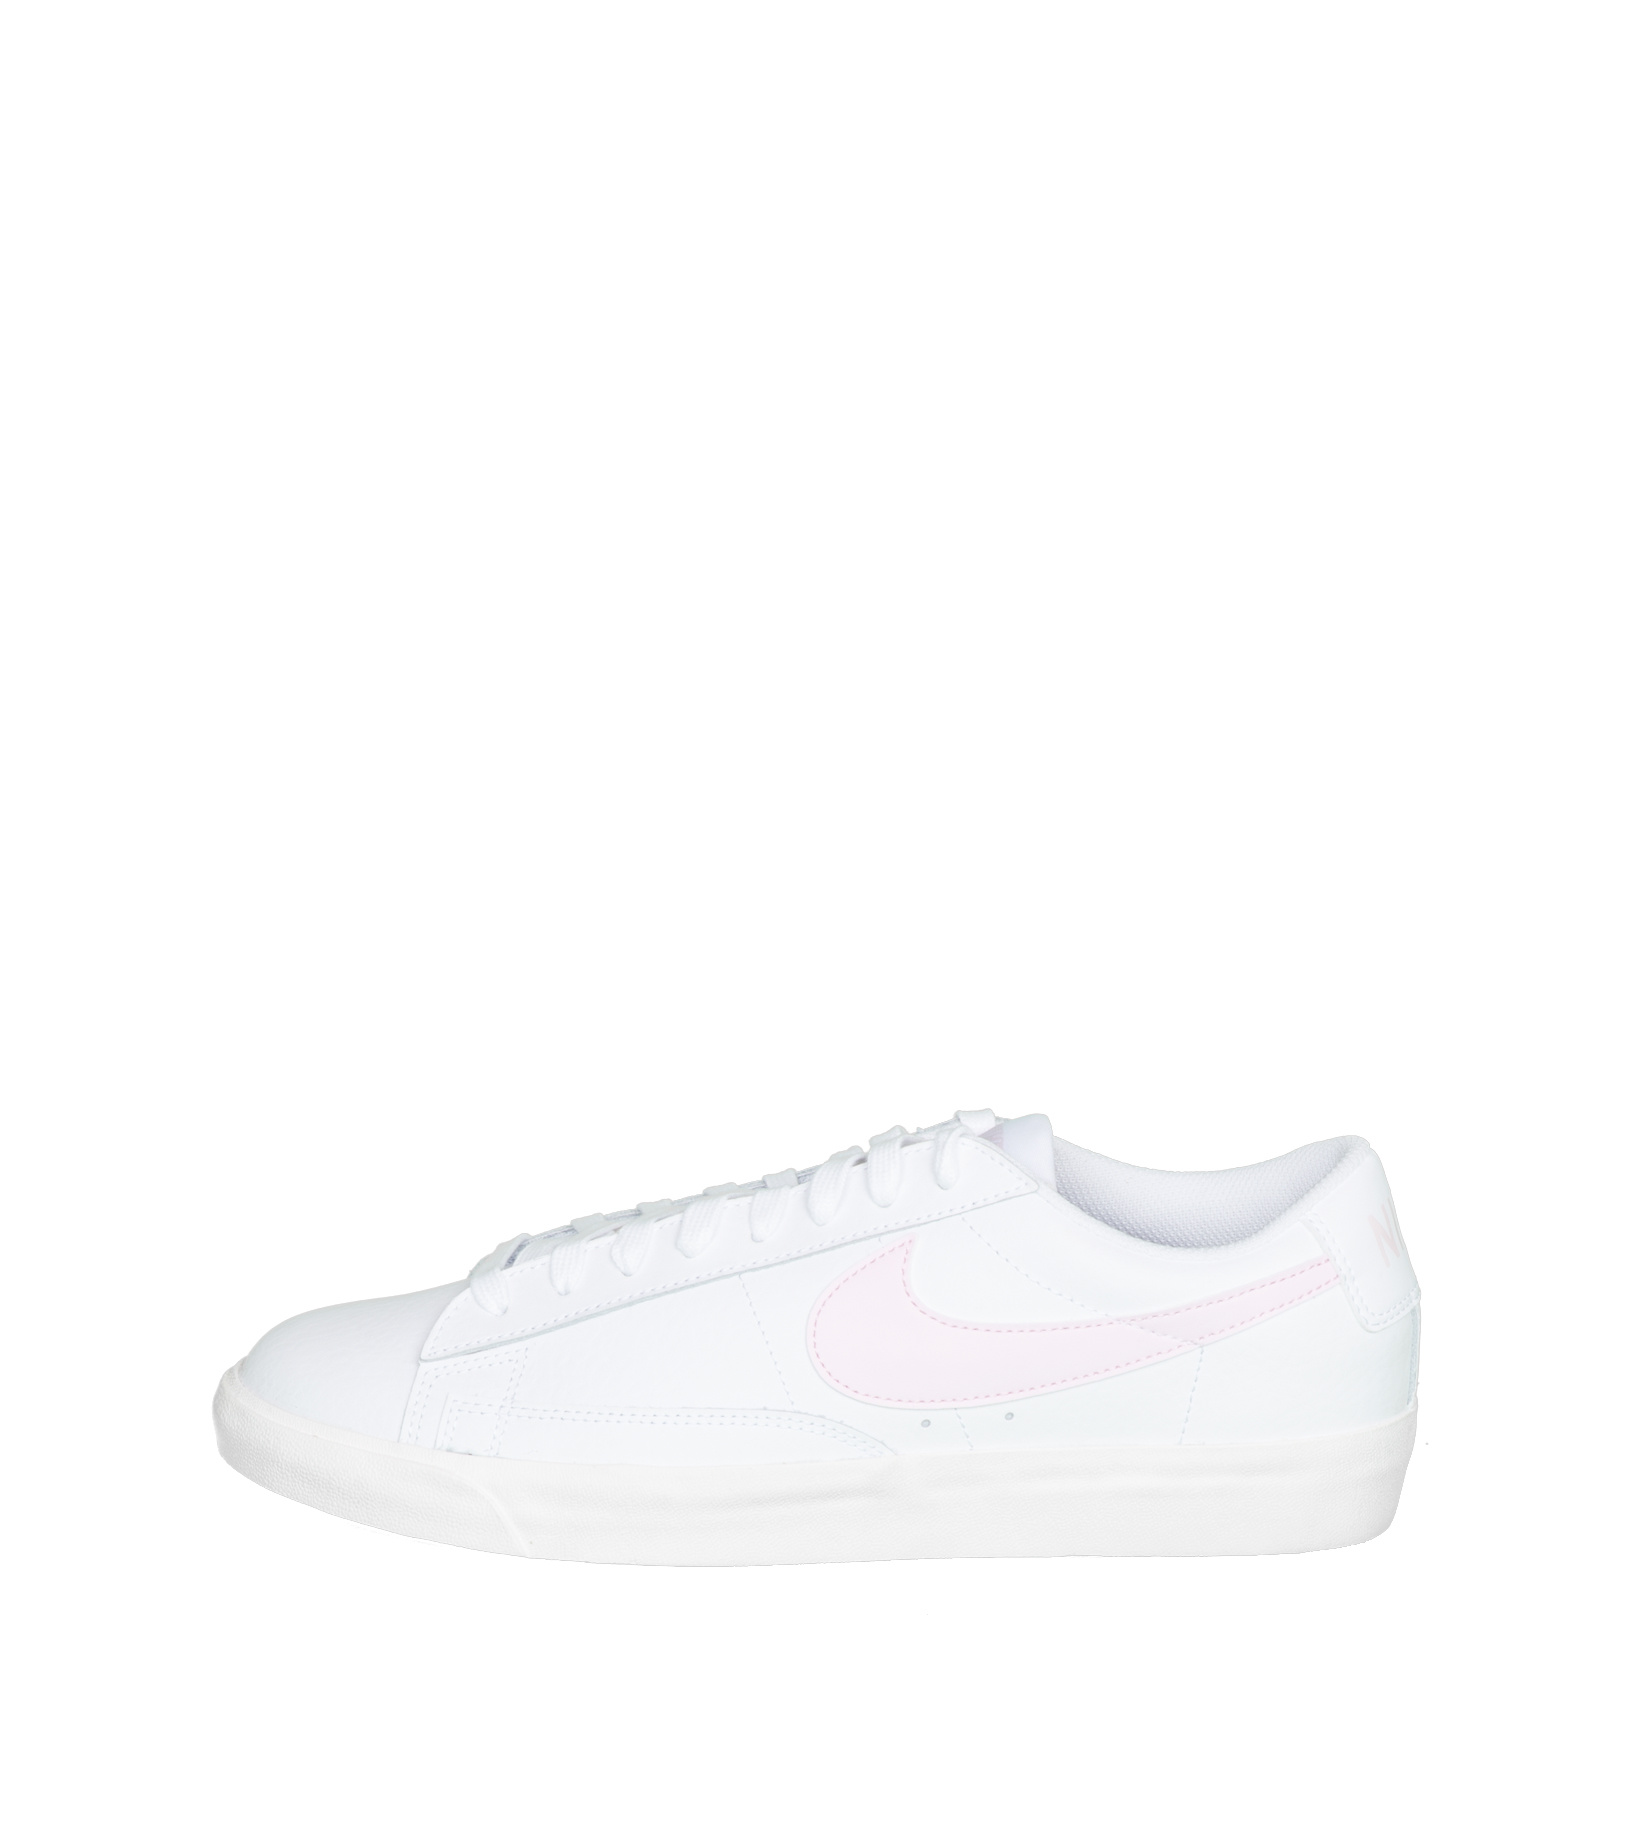 "Blazer Low Leather ""White/Pink Foam""-3"